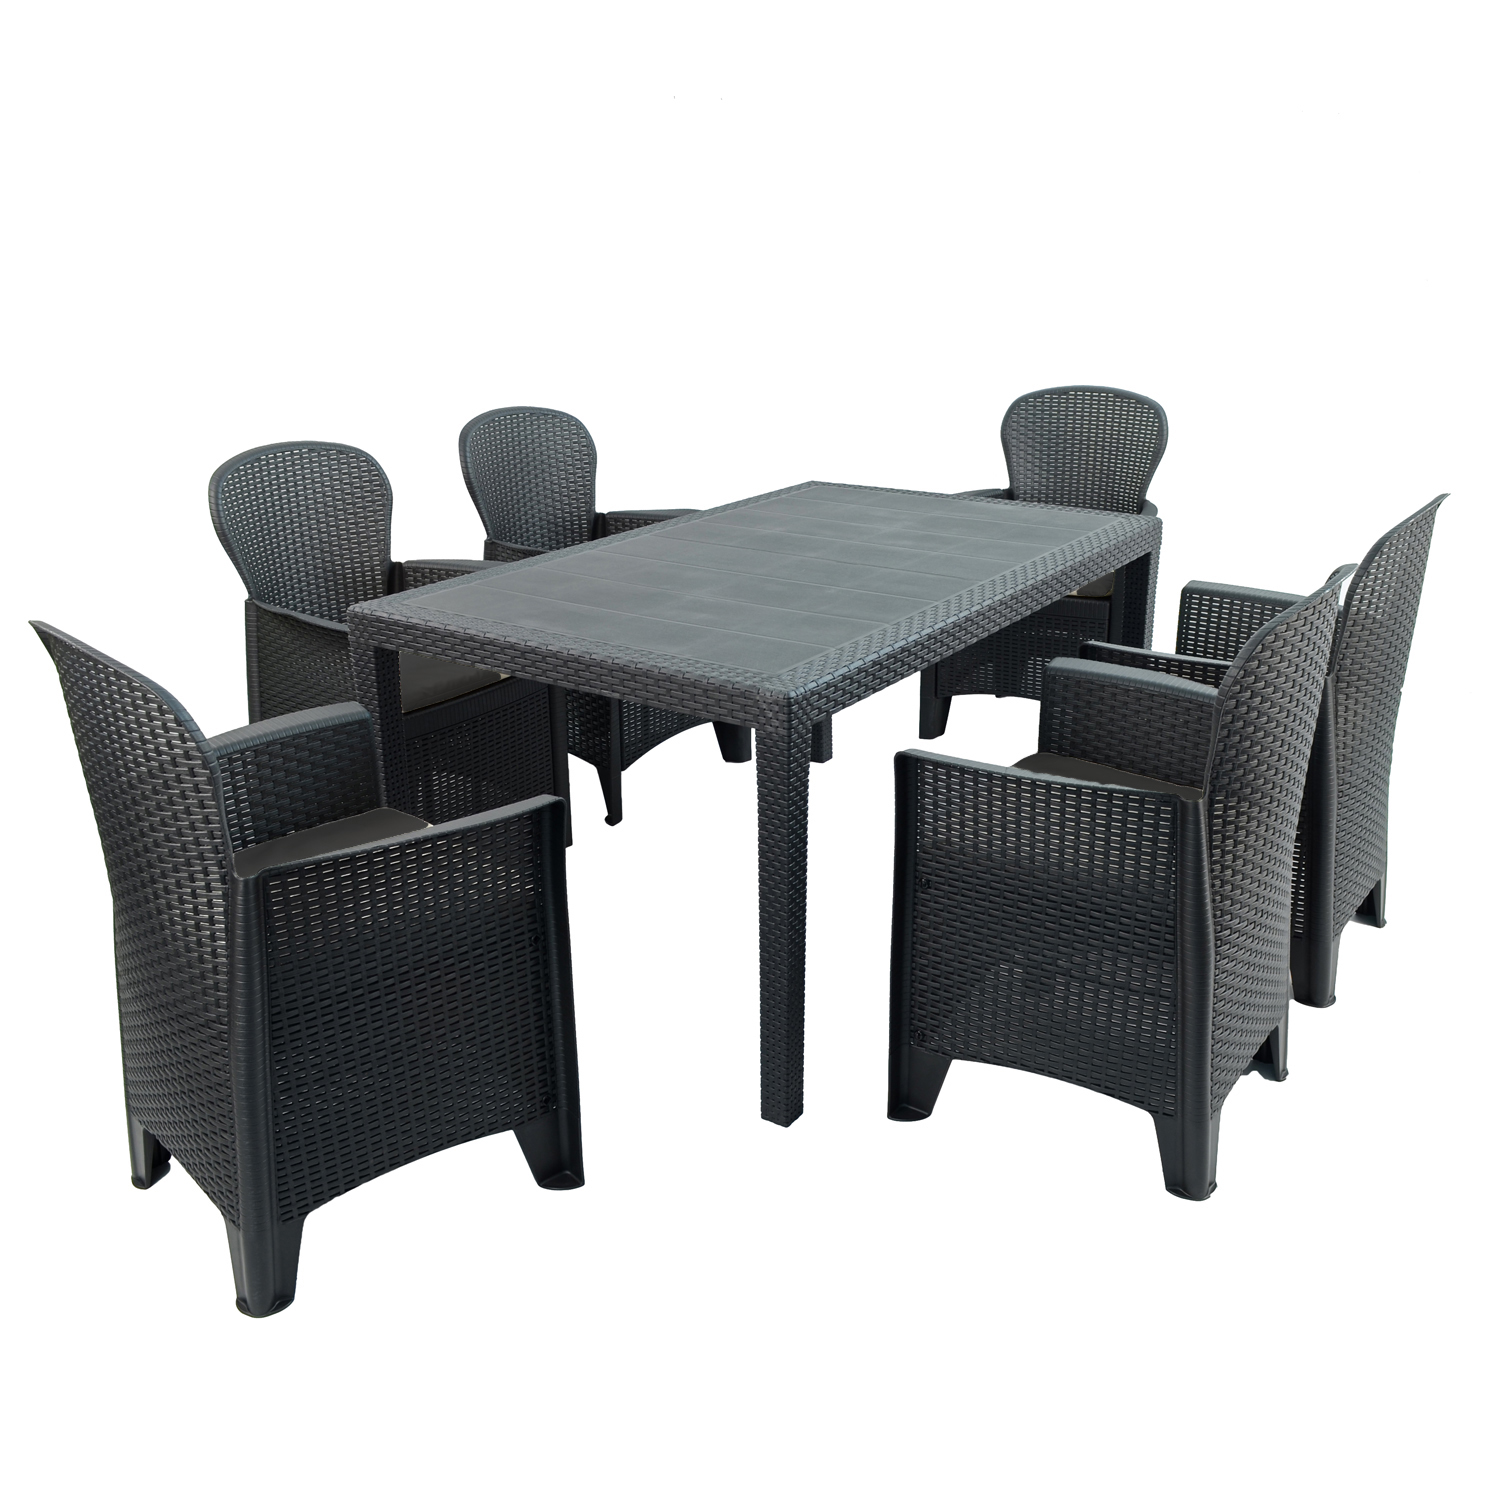 SALERNO DINING TABLE WITH 6 SICILY CHAIRS SET ANTHRACITE